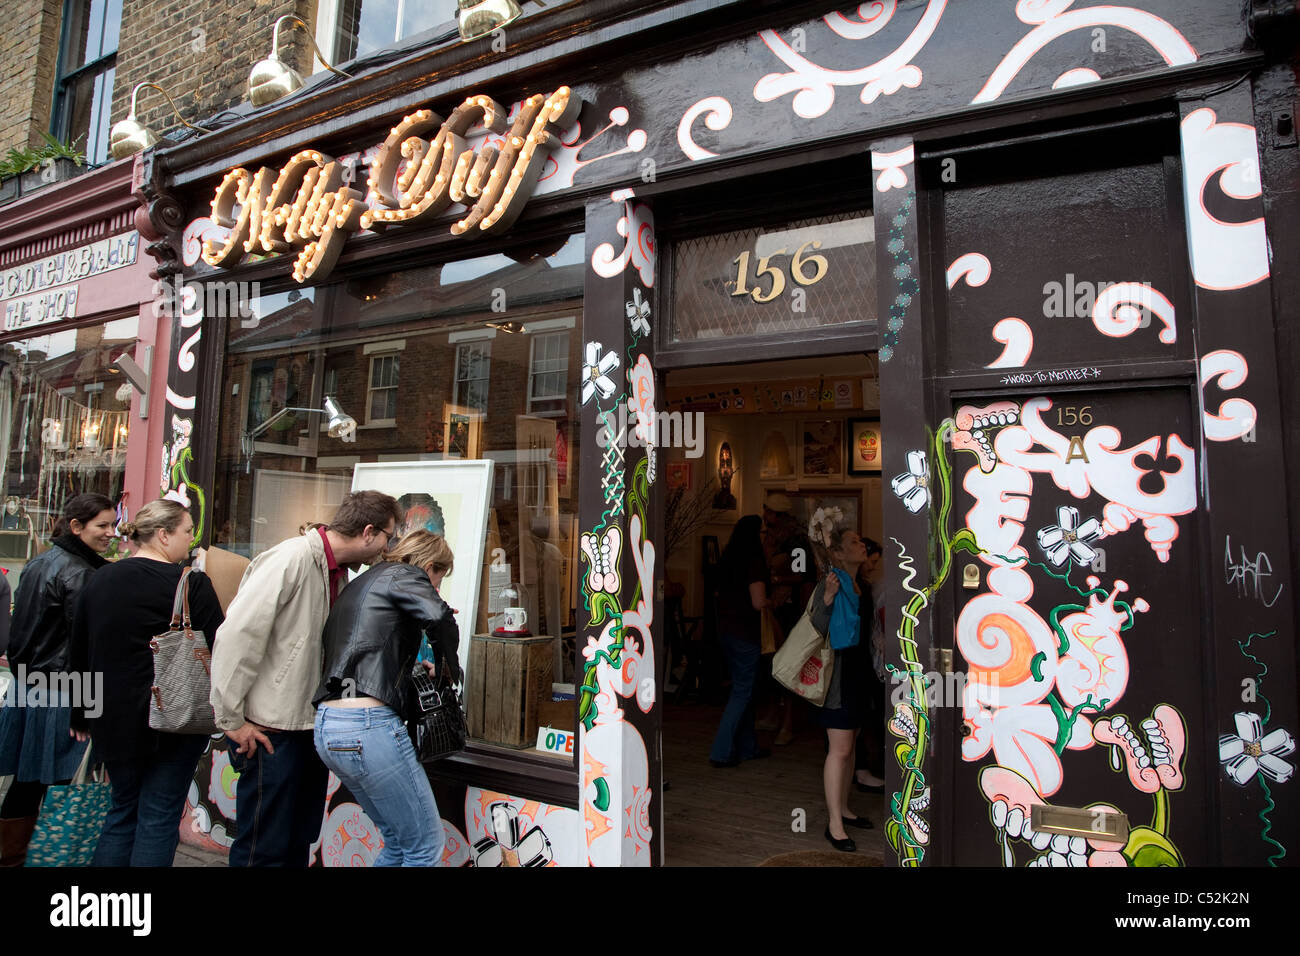 Nelly Duff on Columbia Road, Shoreditch, London, UK - Stock Image